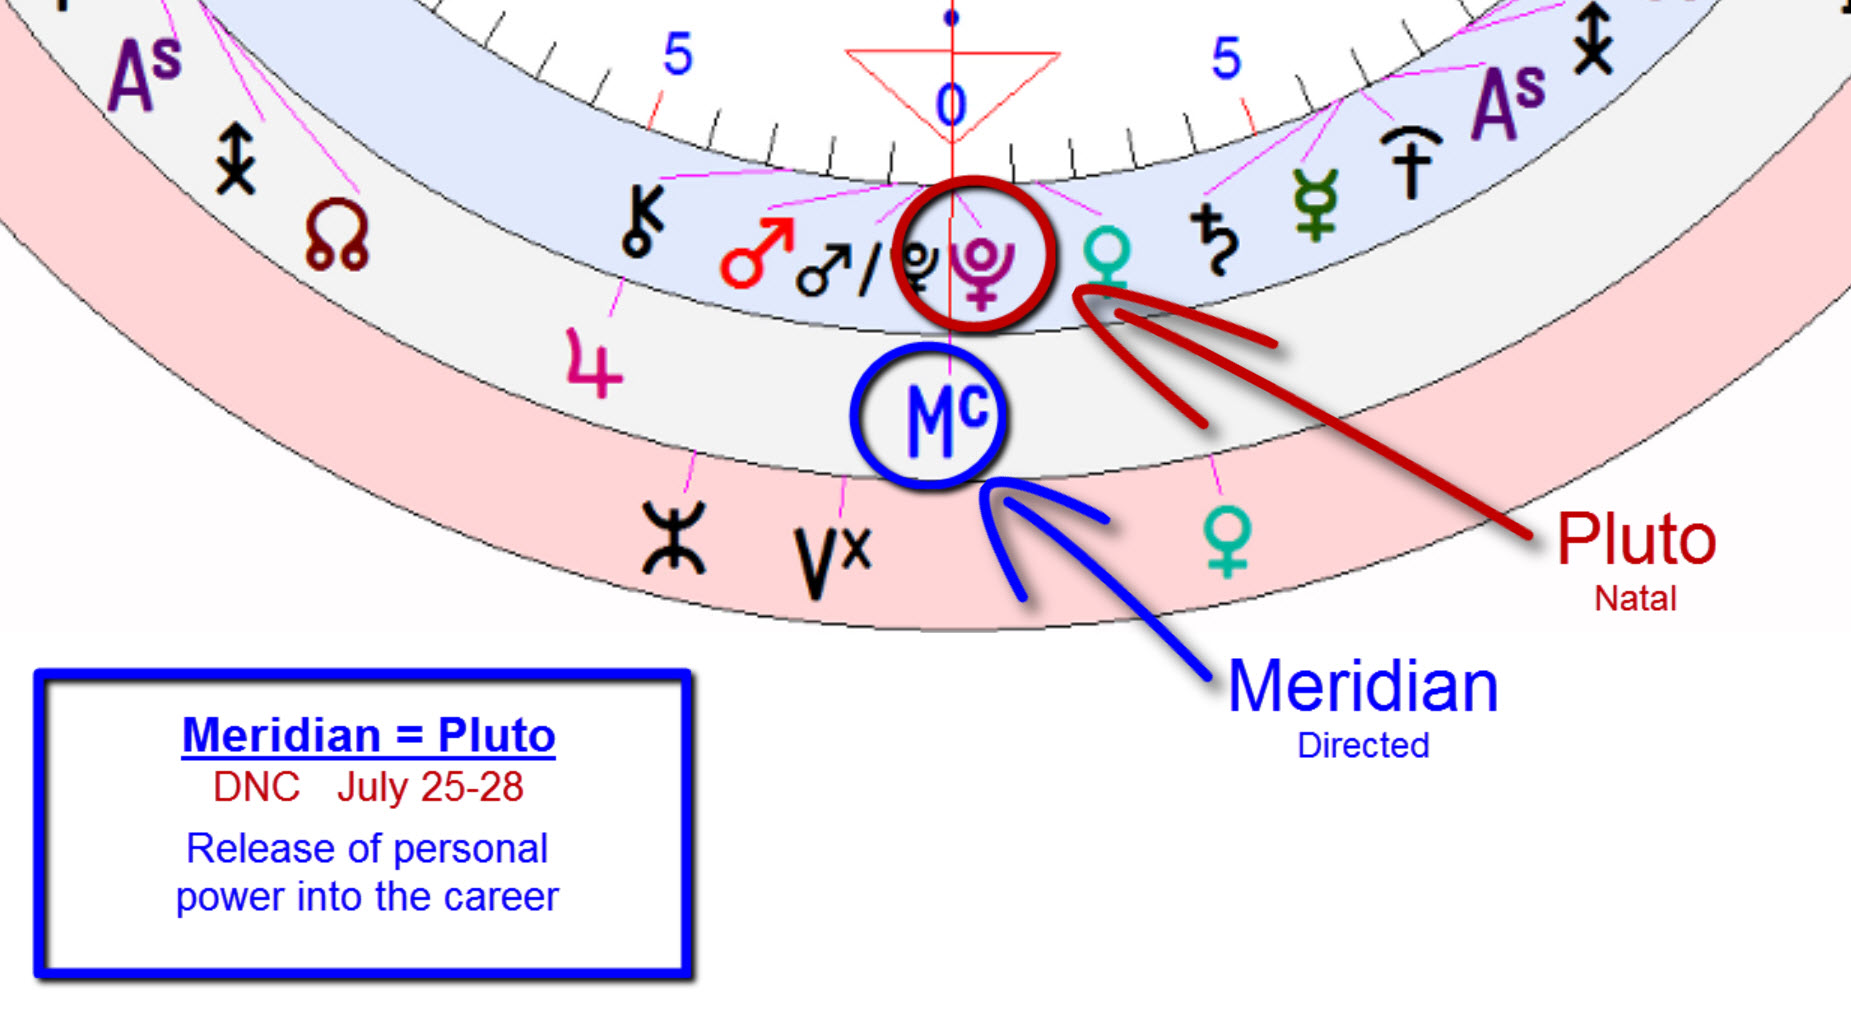 pluto=meridian direction at democratic national convention 2016 ~hillary clinton